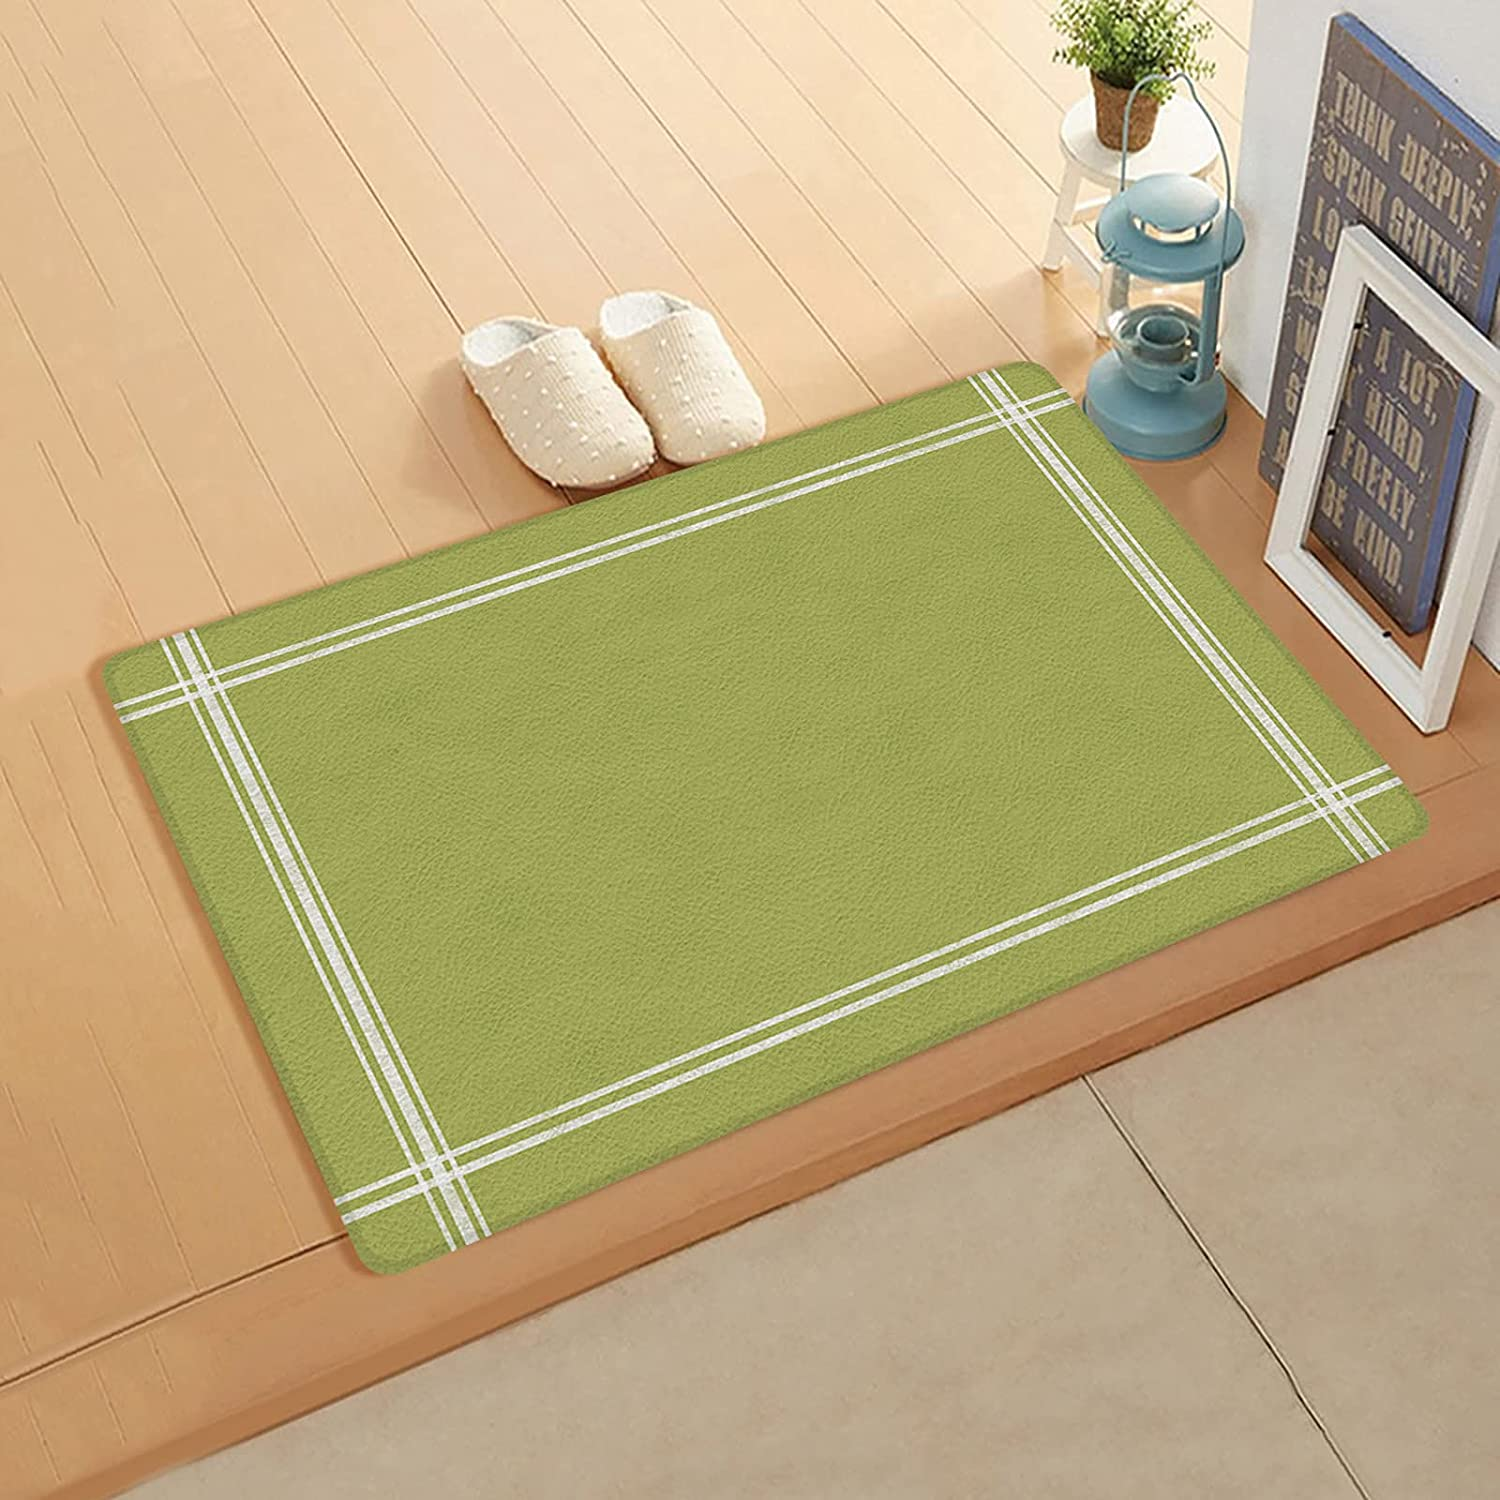 Cushioned Anti Ranking TOP7 New product!! Fatigue Kitchen Mat Lightweigh Color Green Solid